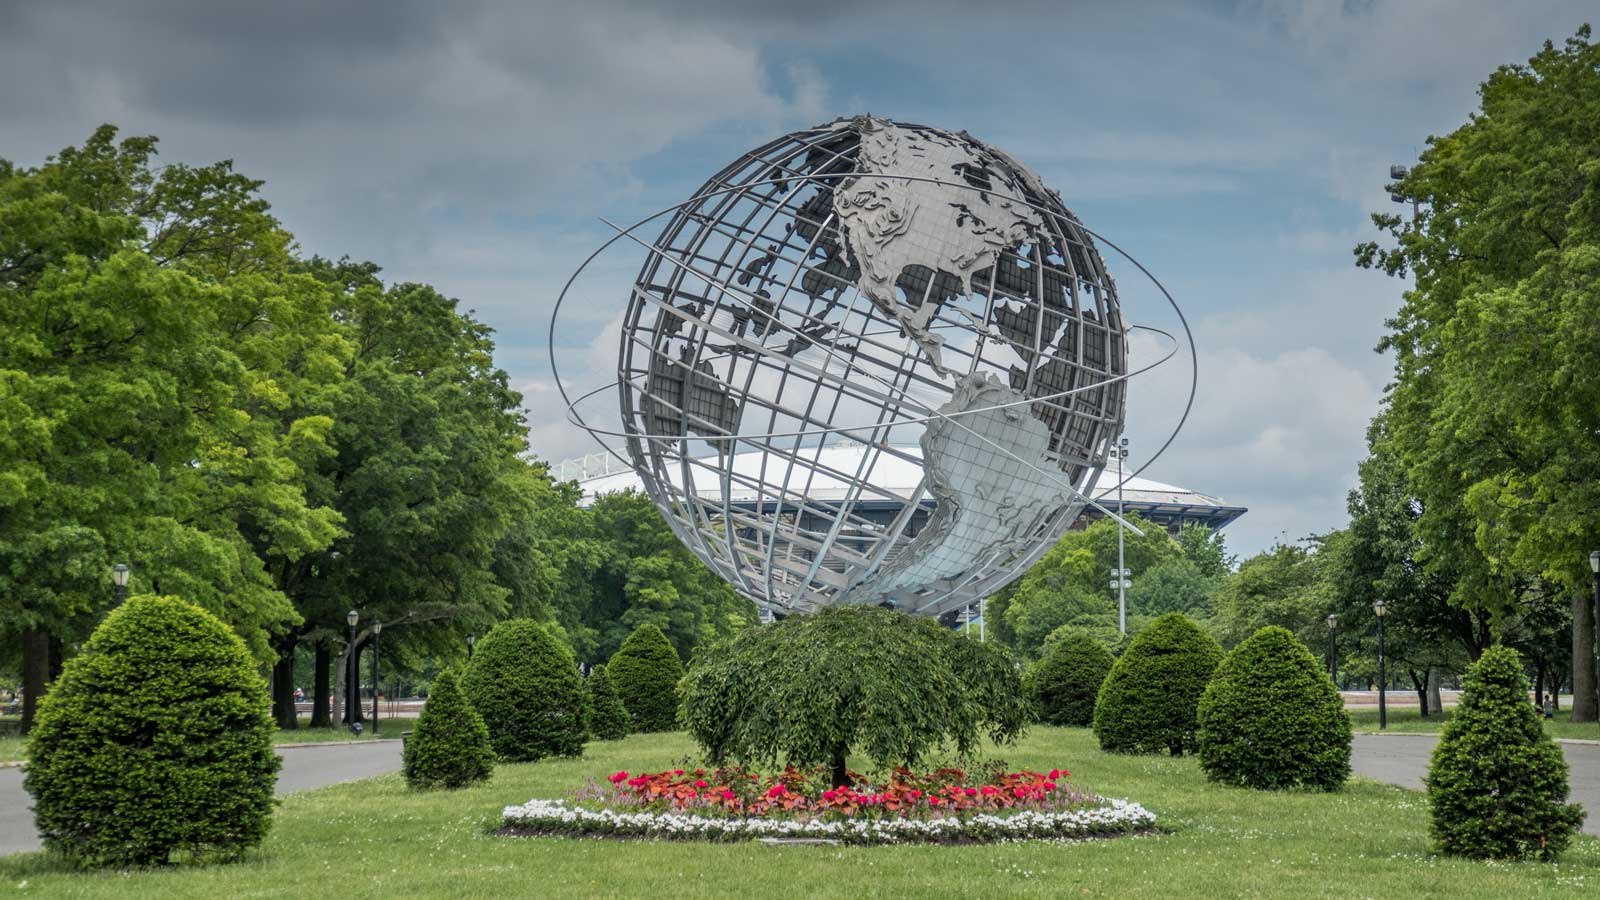 Unisphere Flushing Meadows Corona Park Queens